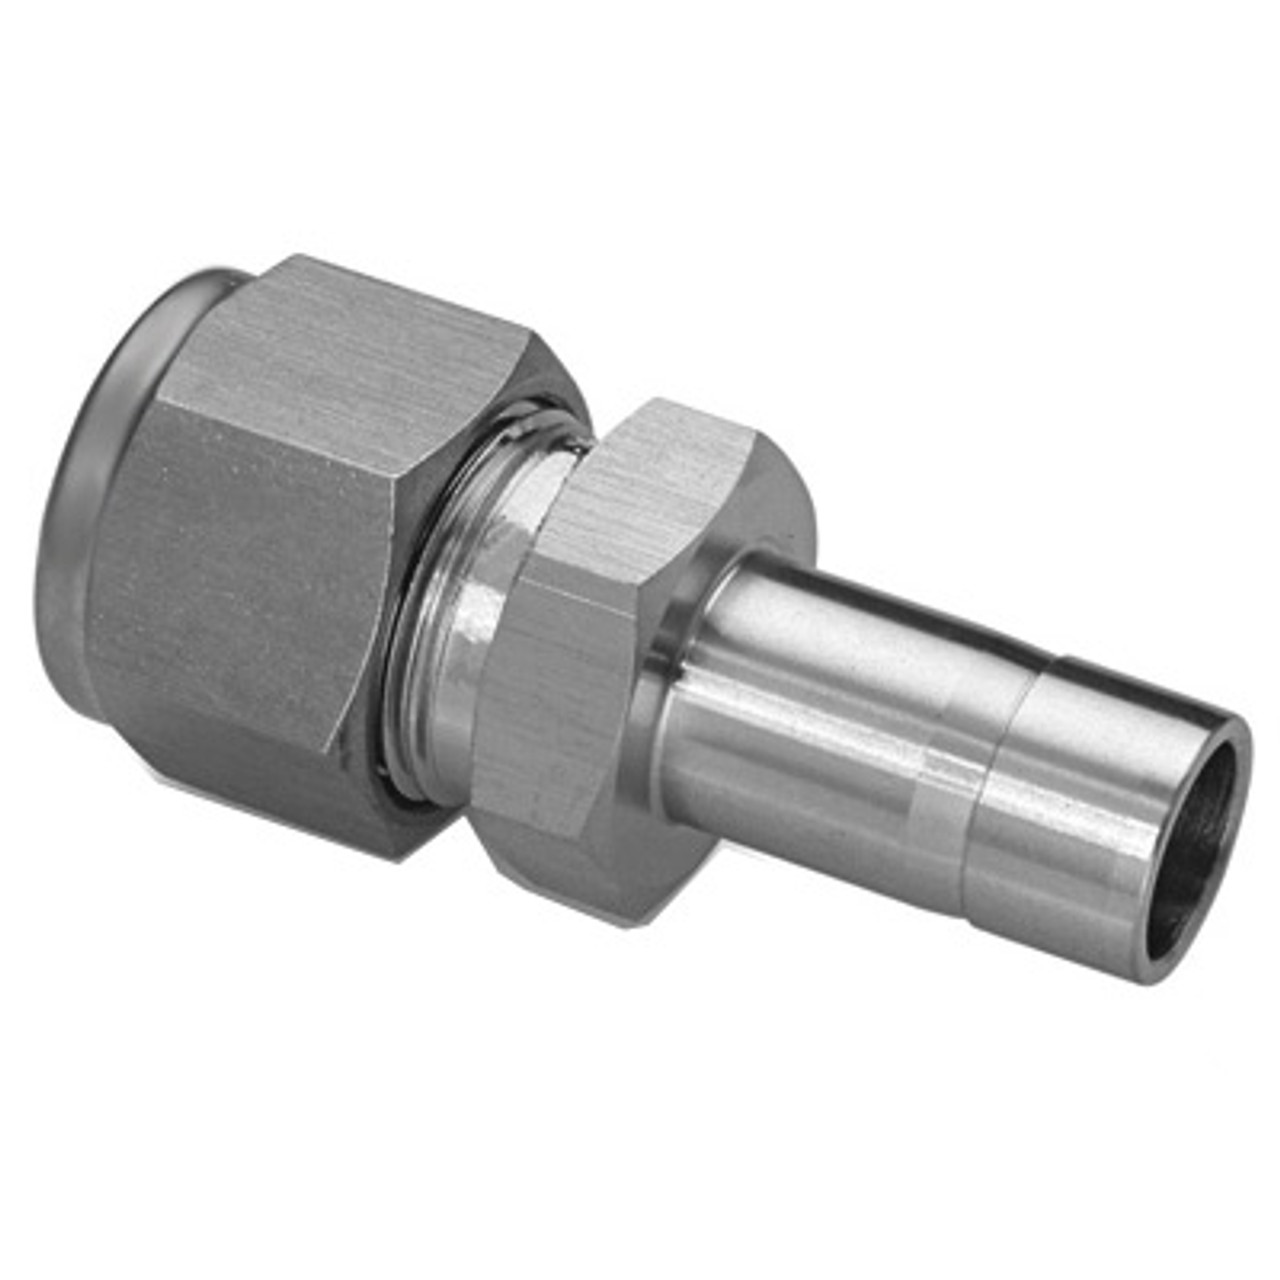 Compression Fittings Stainless Steel 38 Tube X 14 Reducers